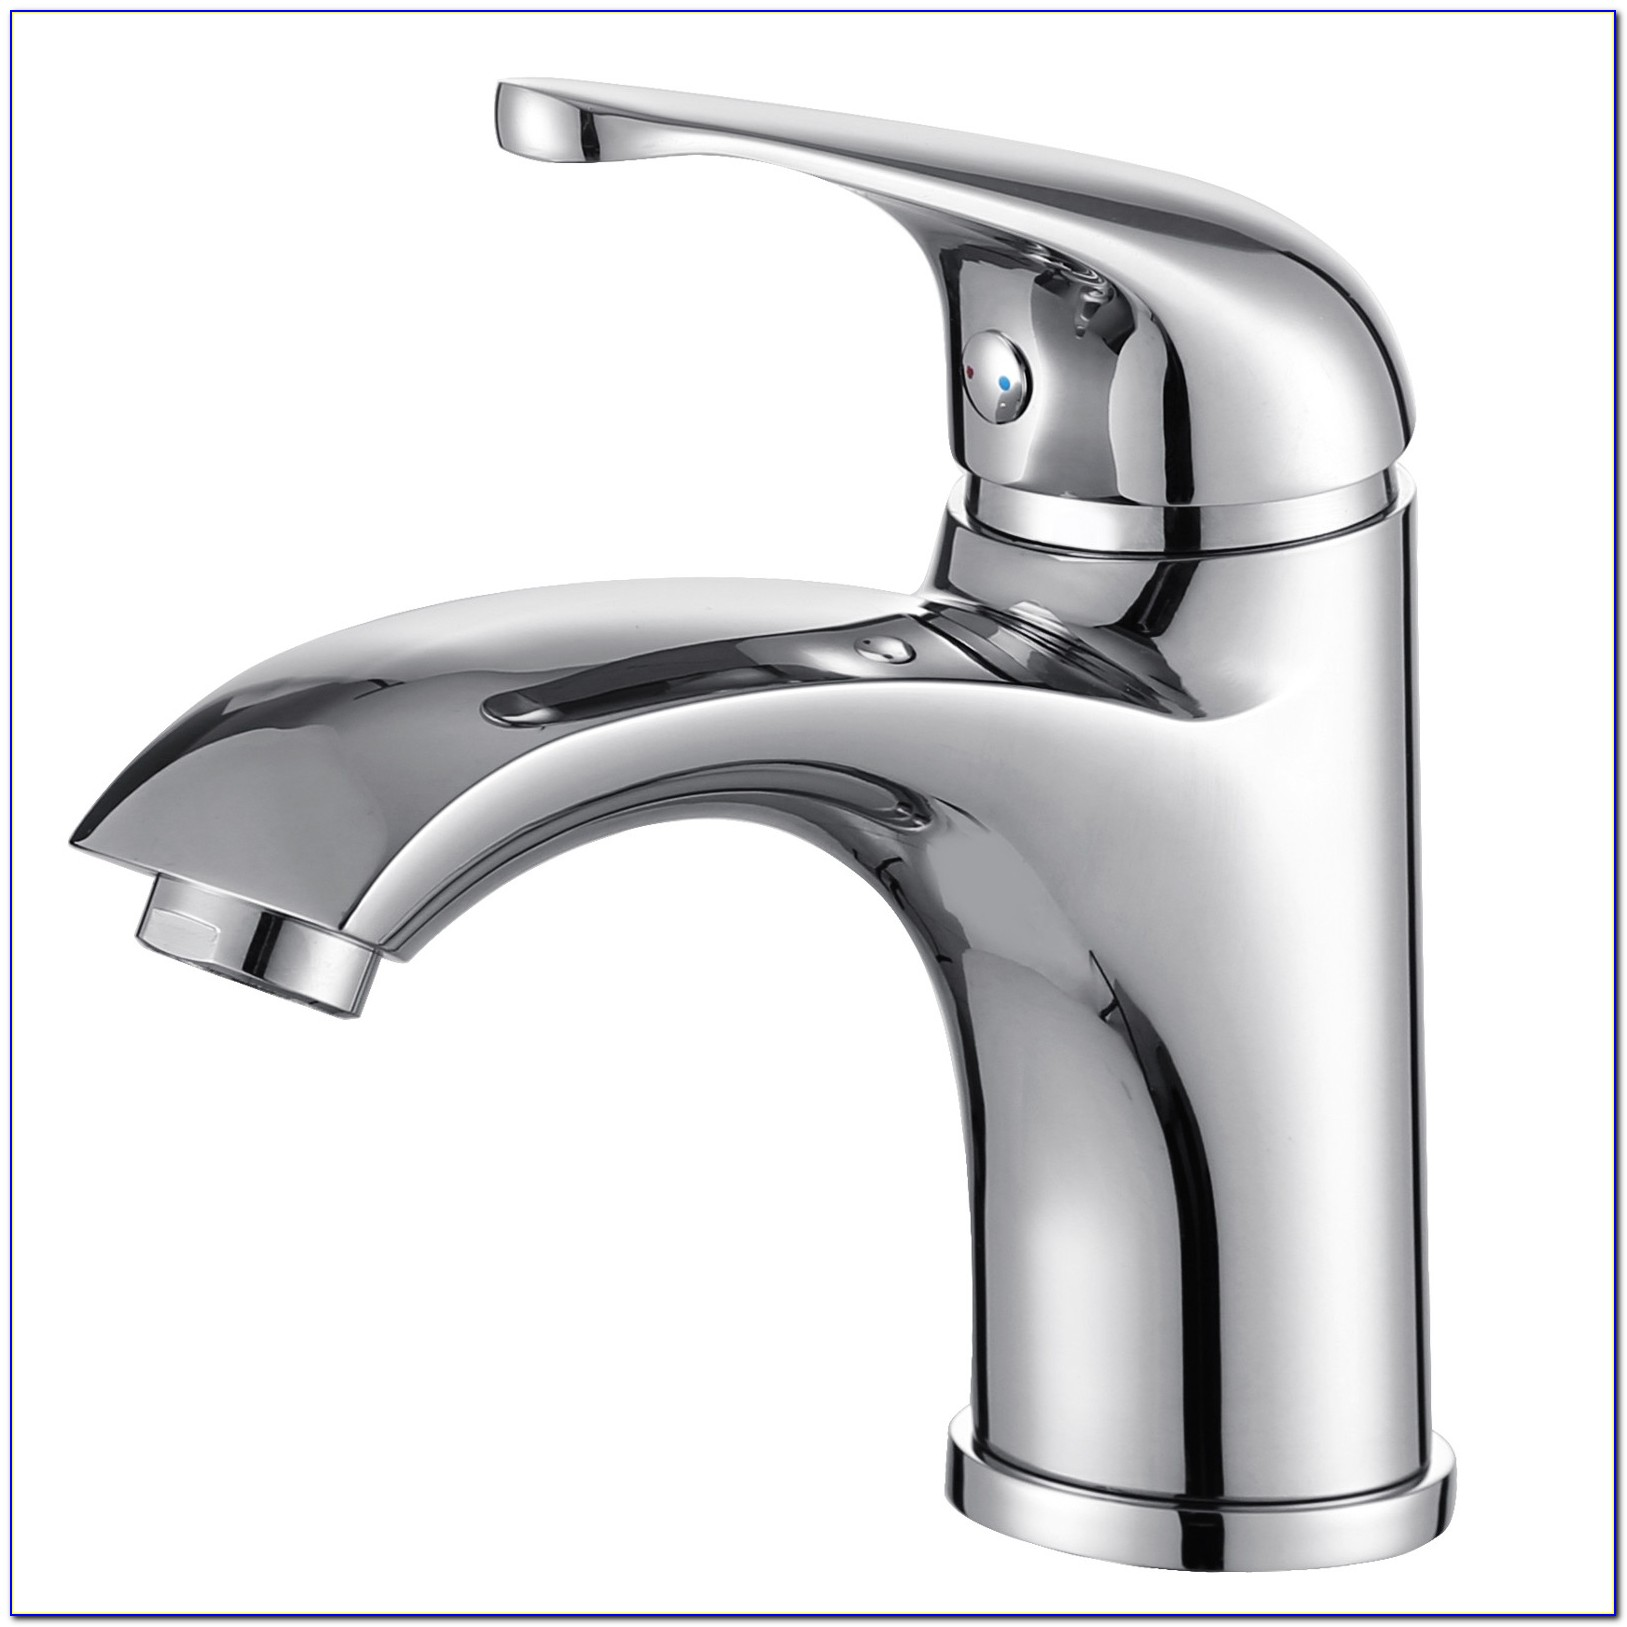 Single Handle Bathroom Faucets  Best Kitchen Cabinet Colors Faucet Supply Line Extension Bathroom Sink Stopper Types